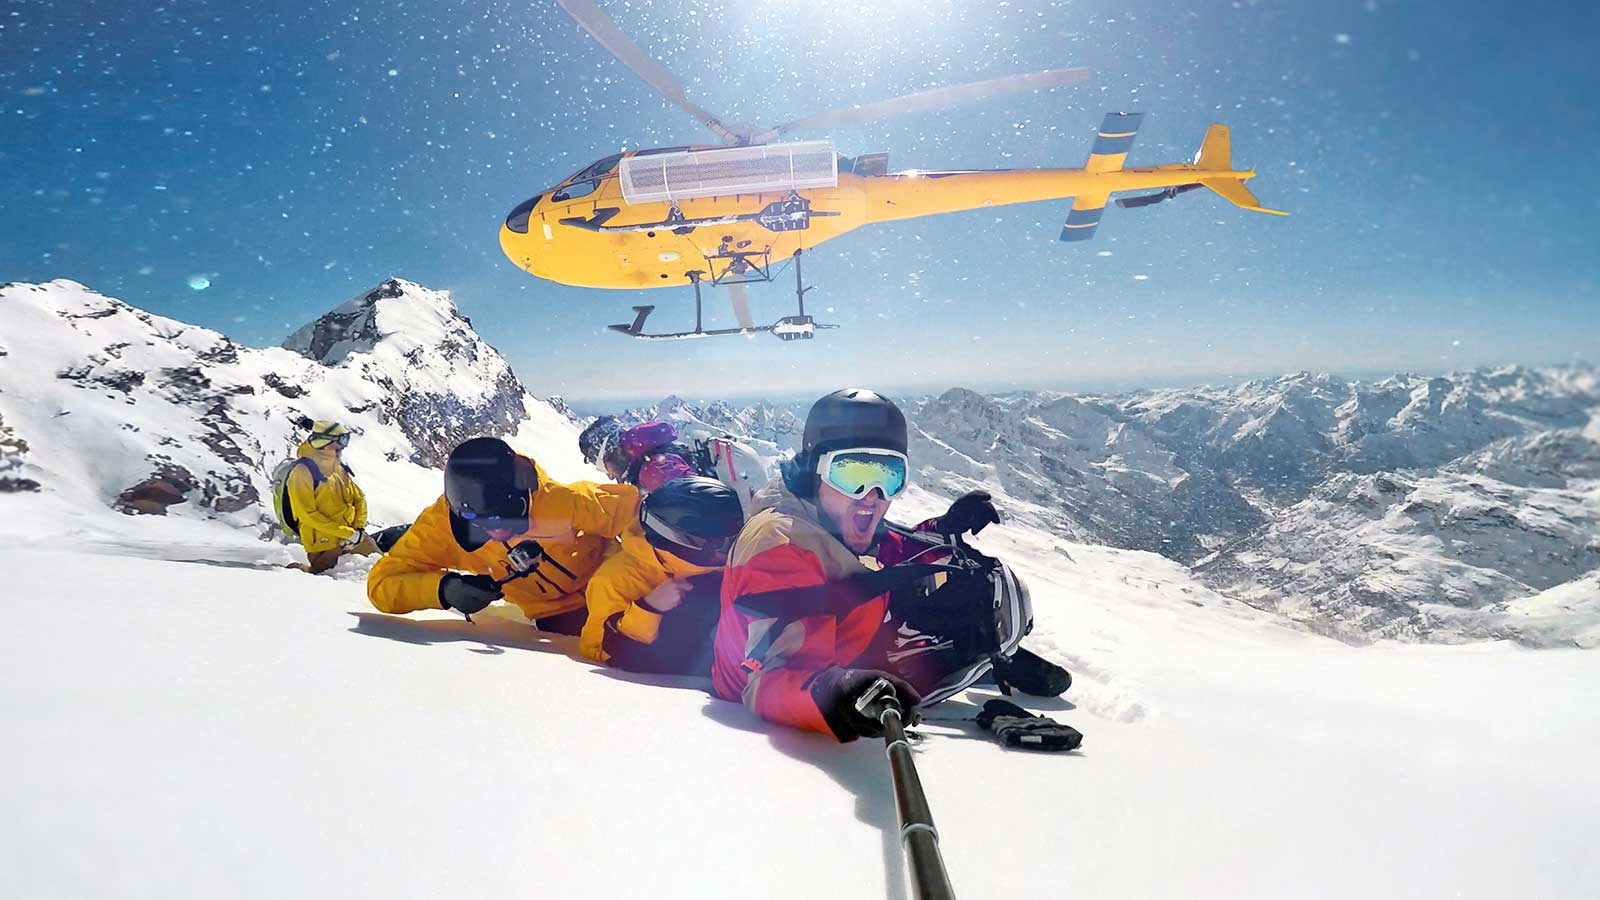 Heliskiing in Black Sea Kackar Mountains in Turkey